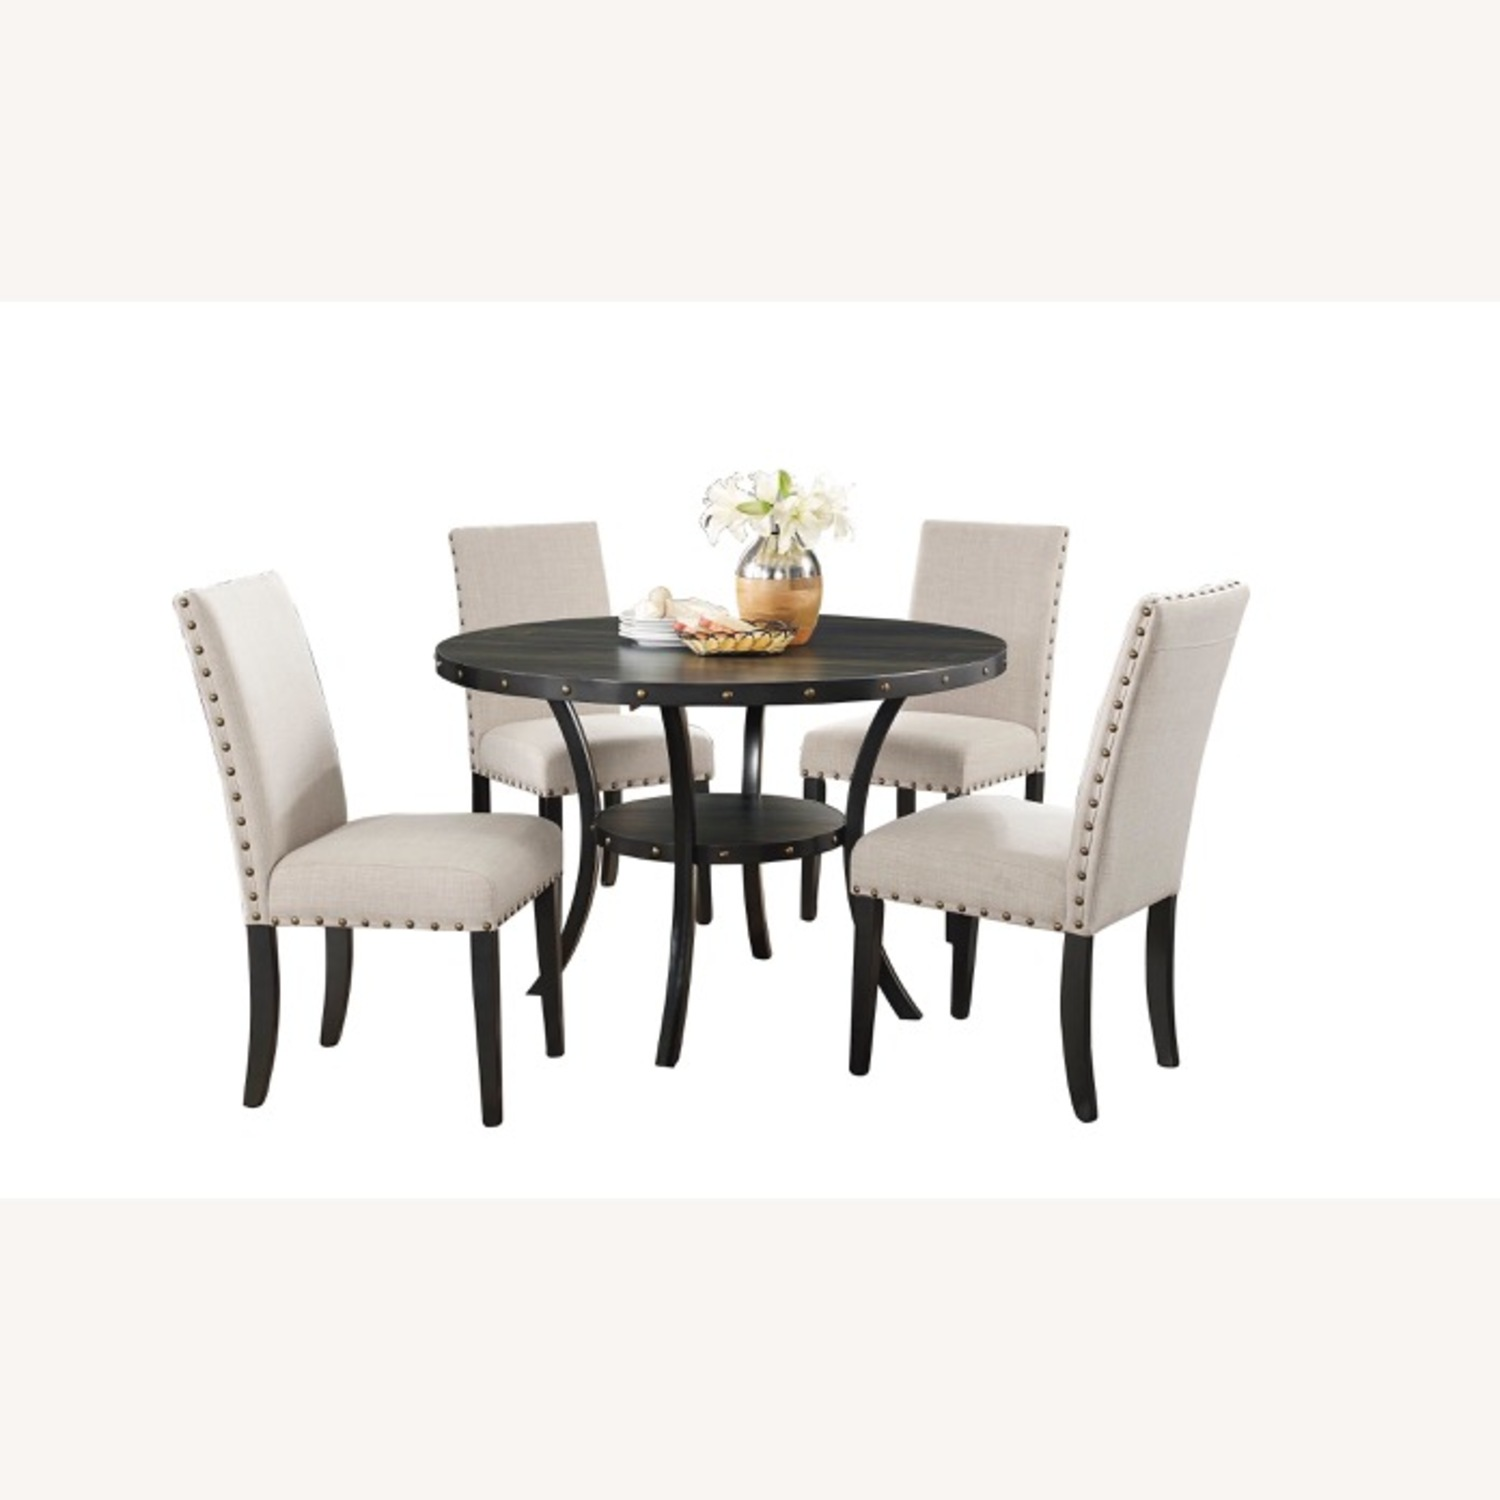 Wayfair Set of Gracie Oaks Upholstered Dining Chairs - image-2